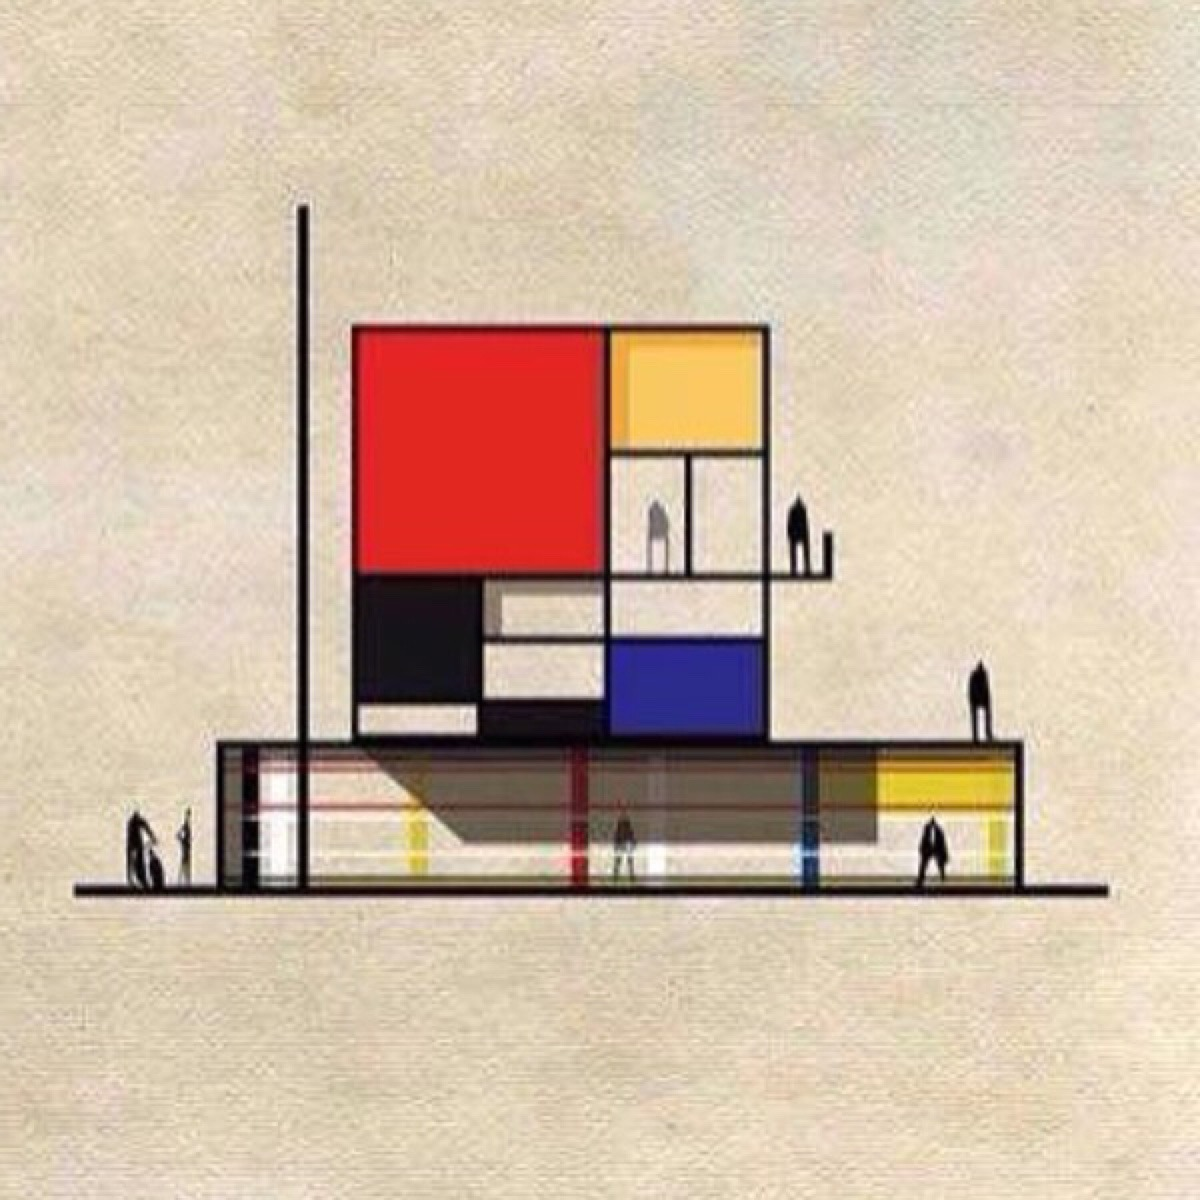 Bauhaus Architekt Bauhaus Movement Magazine Mondrian World Famous Design